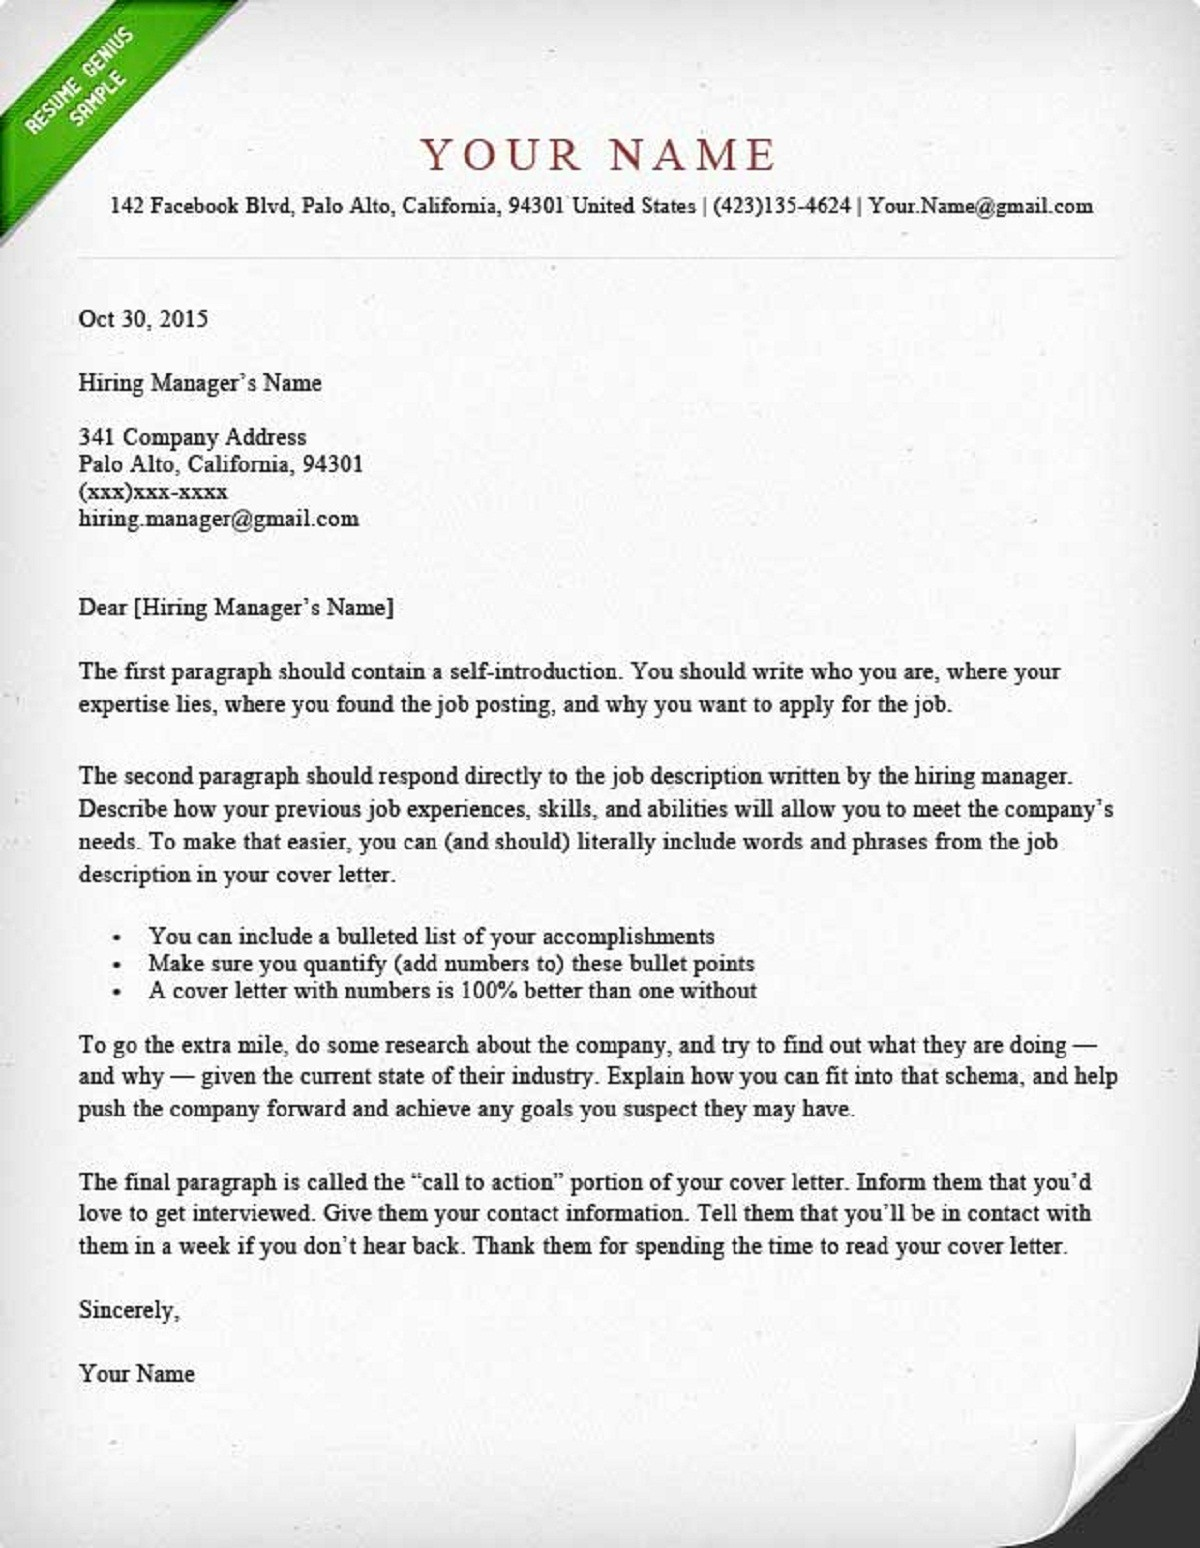 Cover Letter Templates for Resumes New How to Write A Cover Letter Guide with Sample